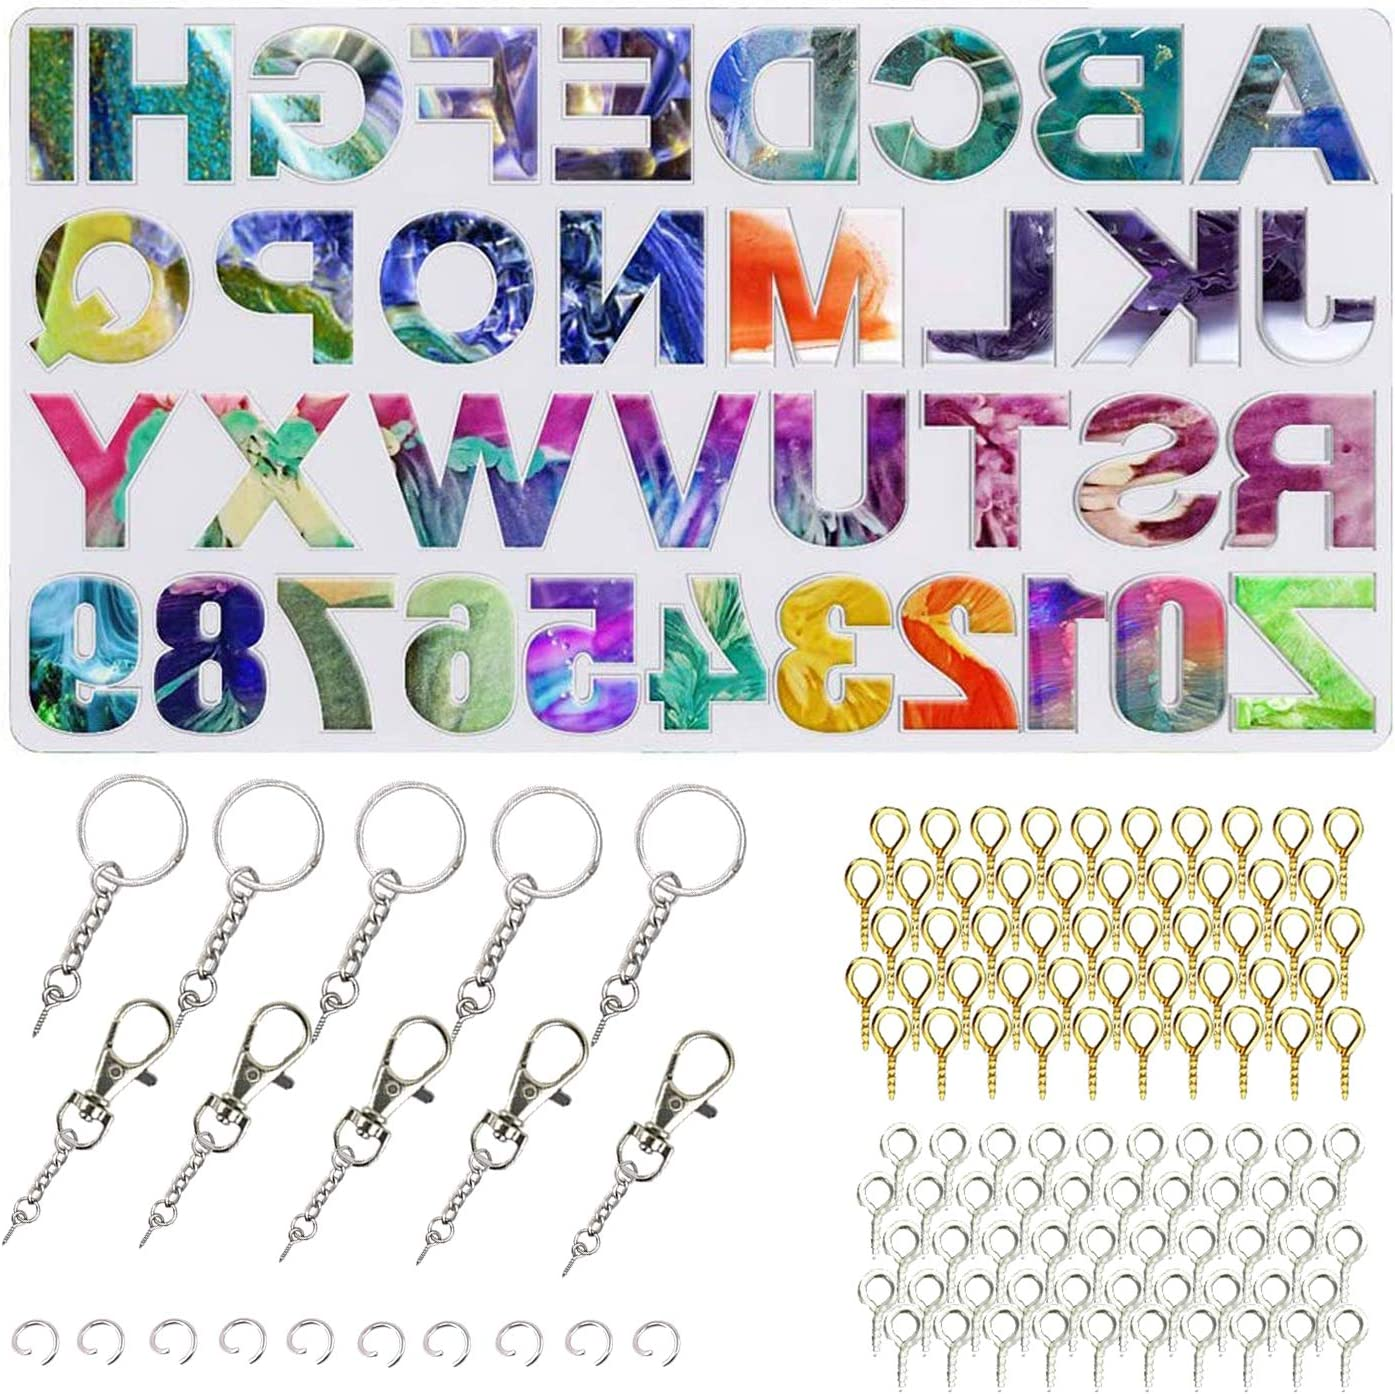 with Keychain Tassels and Pin Vise Set for Key Chain House Number Letter Number Silicone Reversed Keychain Resin Jewelry Mold for Resin Casting Alphabet Resin Silicone Mold Backward Set 41 pcs